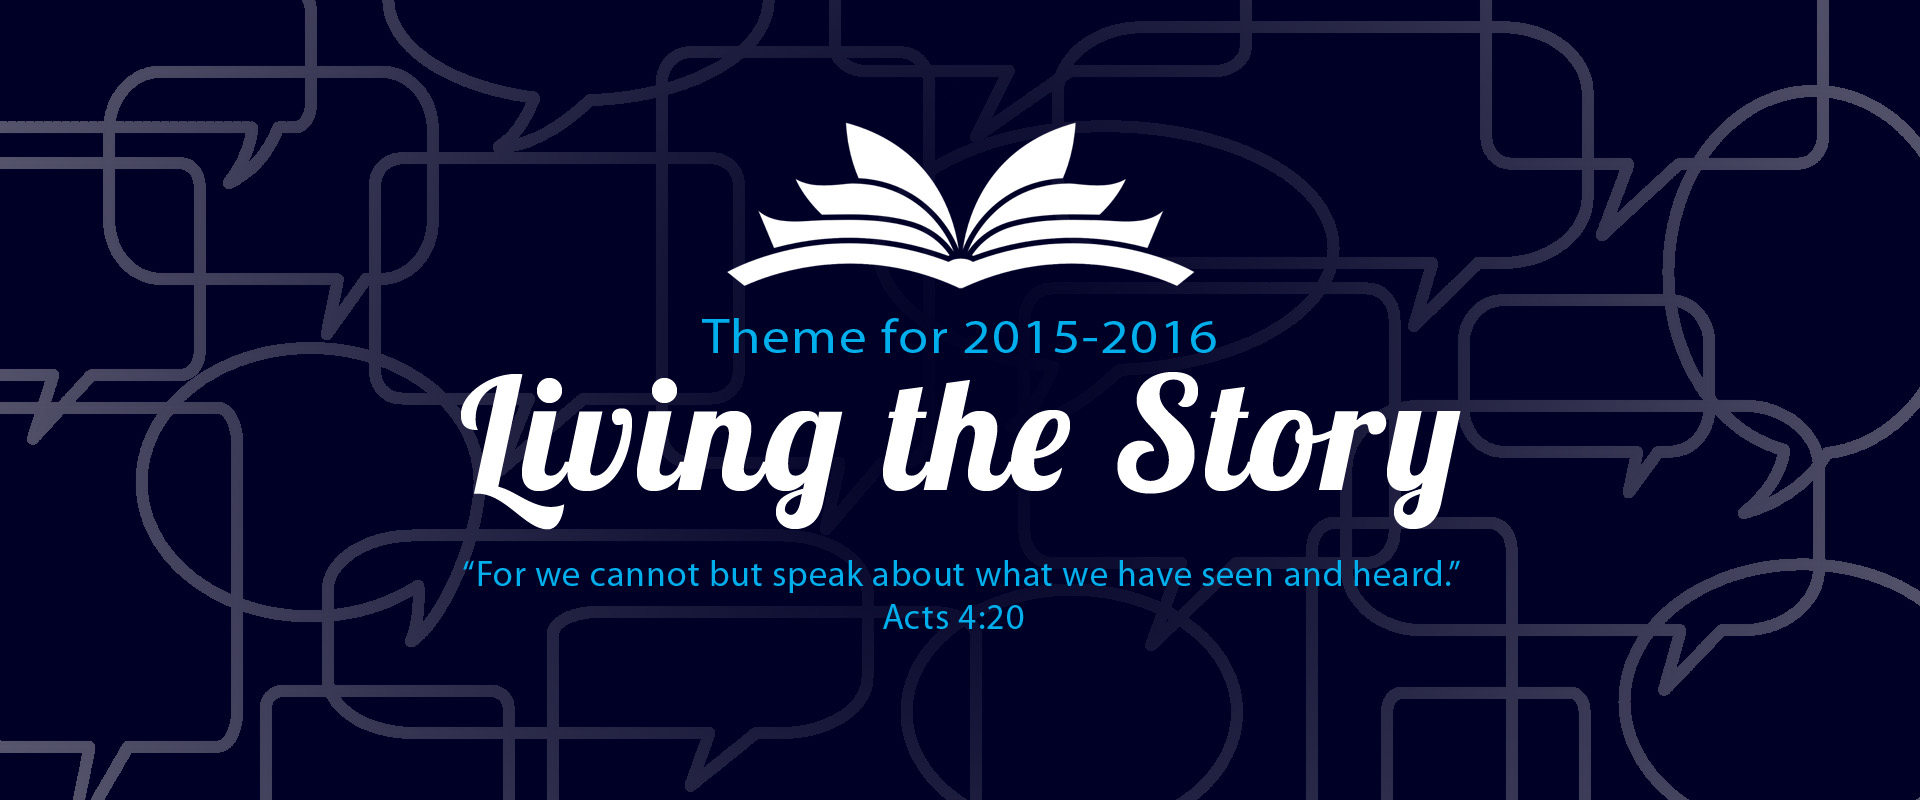 Living-the-story-CVC-theme